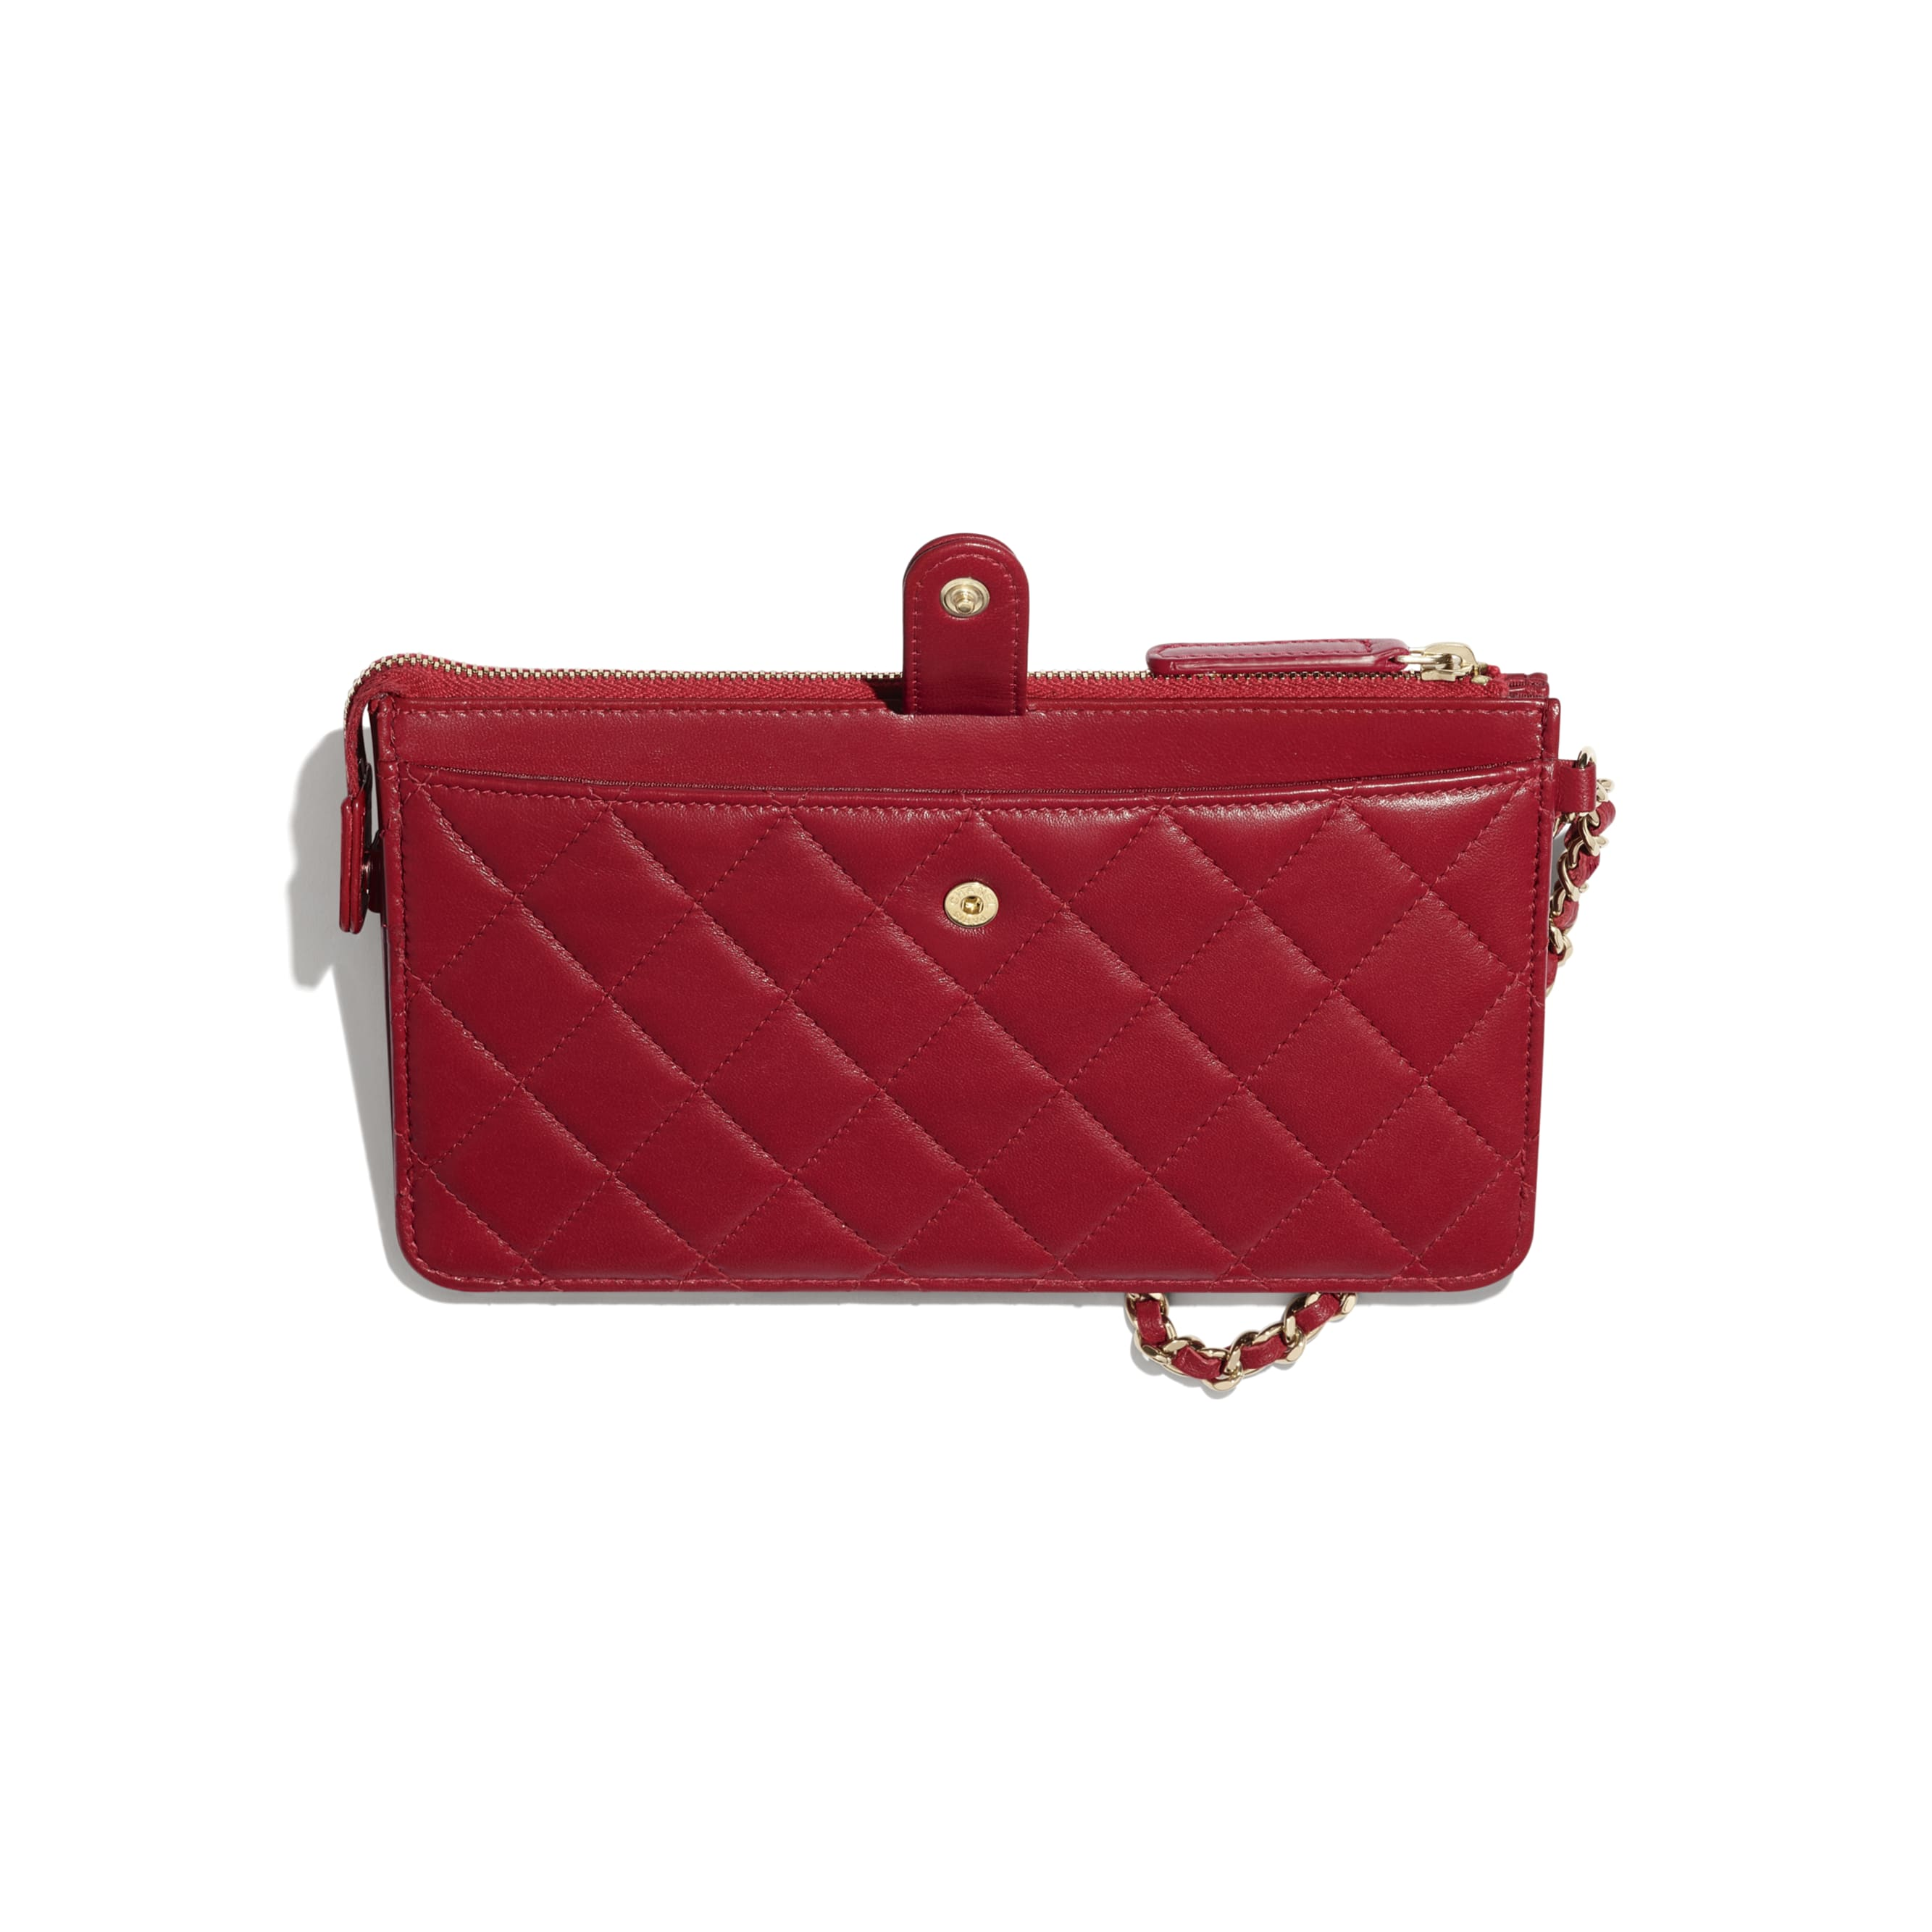 Wallet with Handle - Red - Lambskin, Charms & Gold-Tone Metal - CHANEL - Other view - see standard sized version